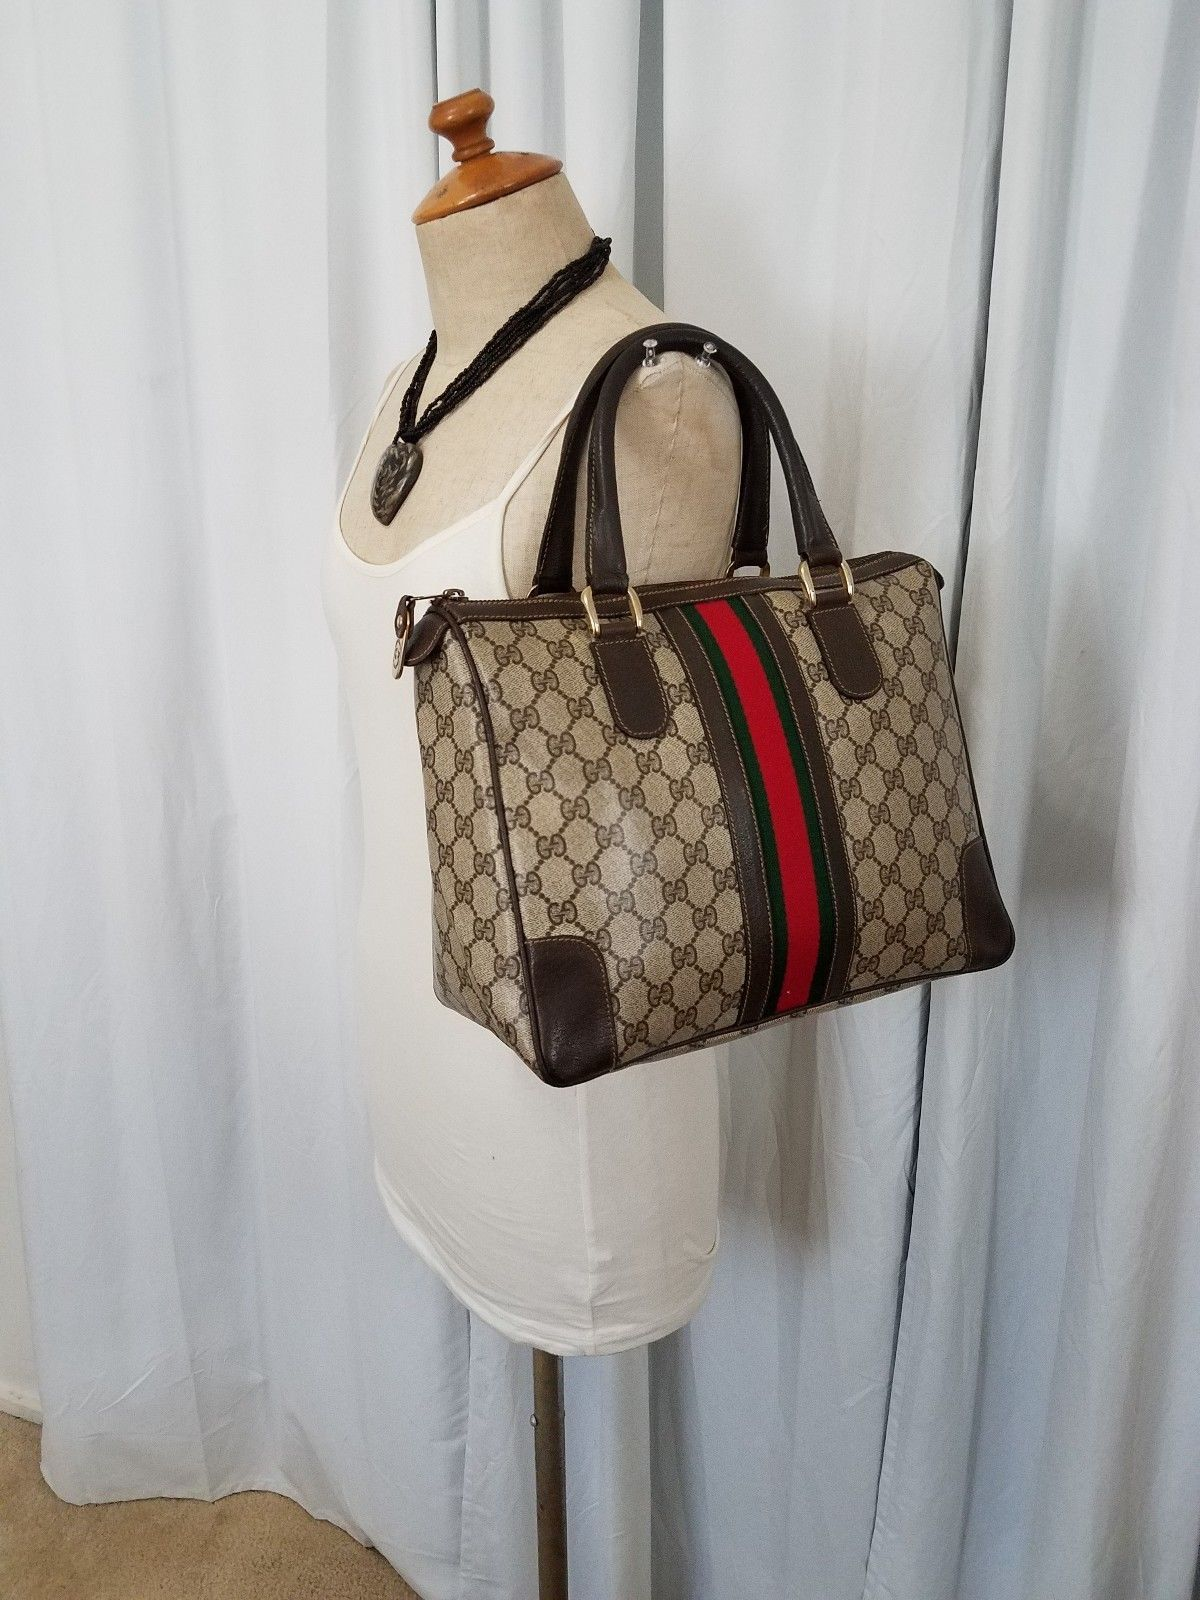 049b89eacce Details about Authentic Vintage GUCCI Web Boston Doctor Bag Satchel ...